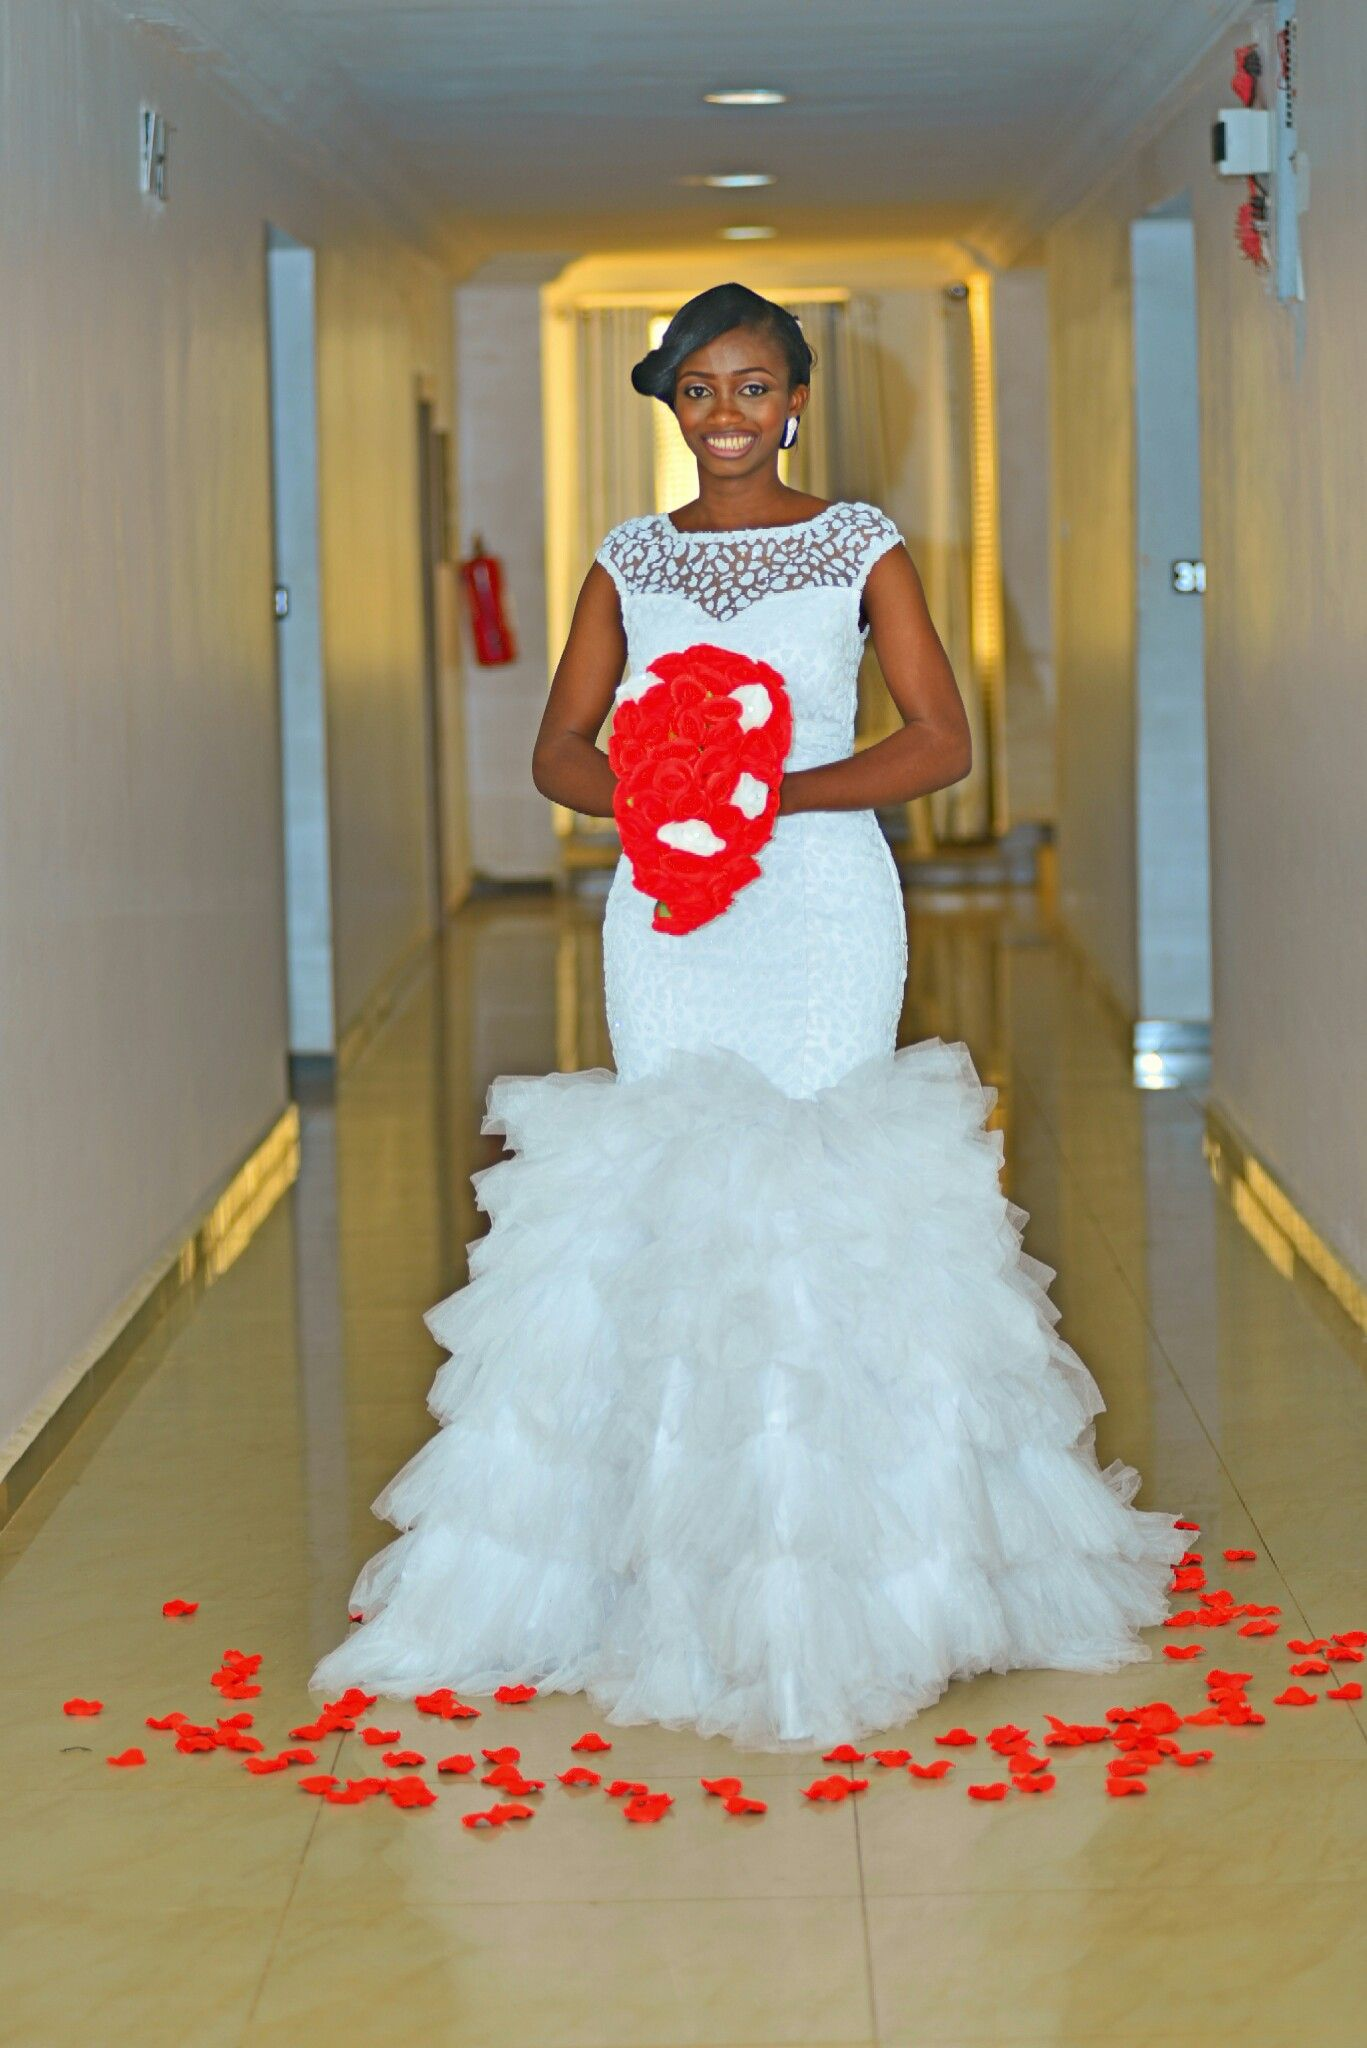 Wedding Dress by Kamille_couture on Instagram and Facebook based in ...